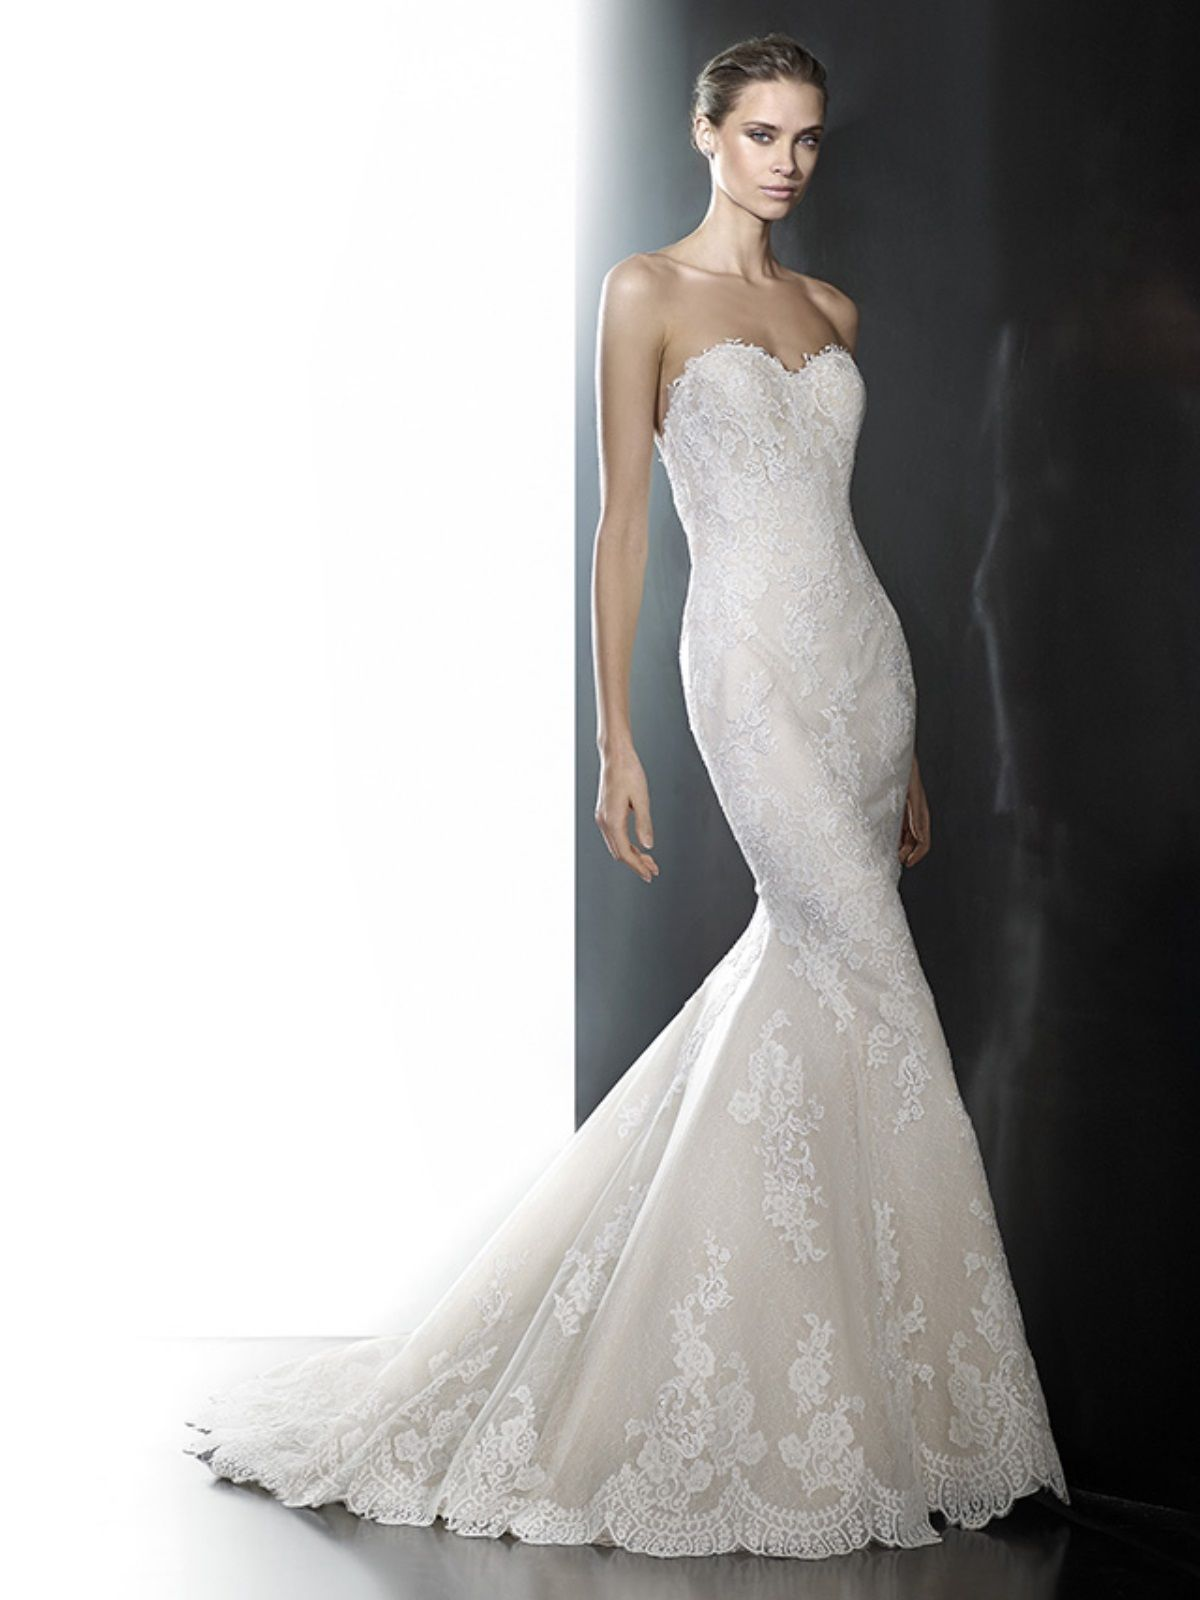 Groß Second Hand Designer Wedding Dresses Uk Galerie - Brautkleider ...